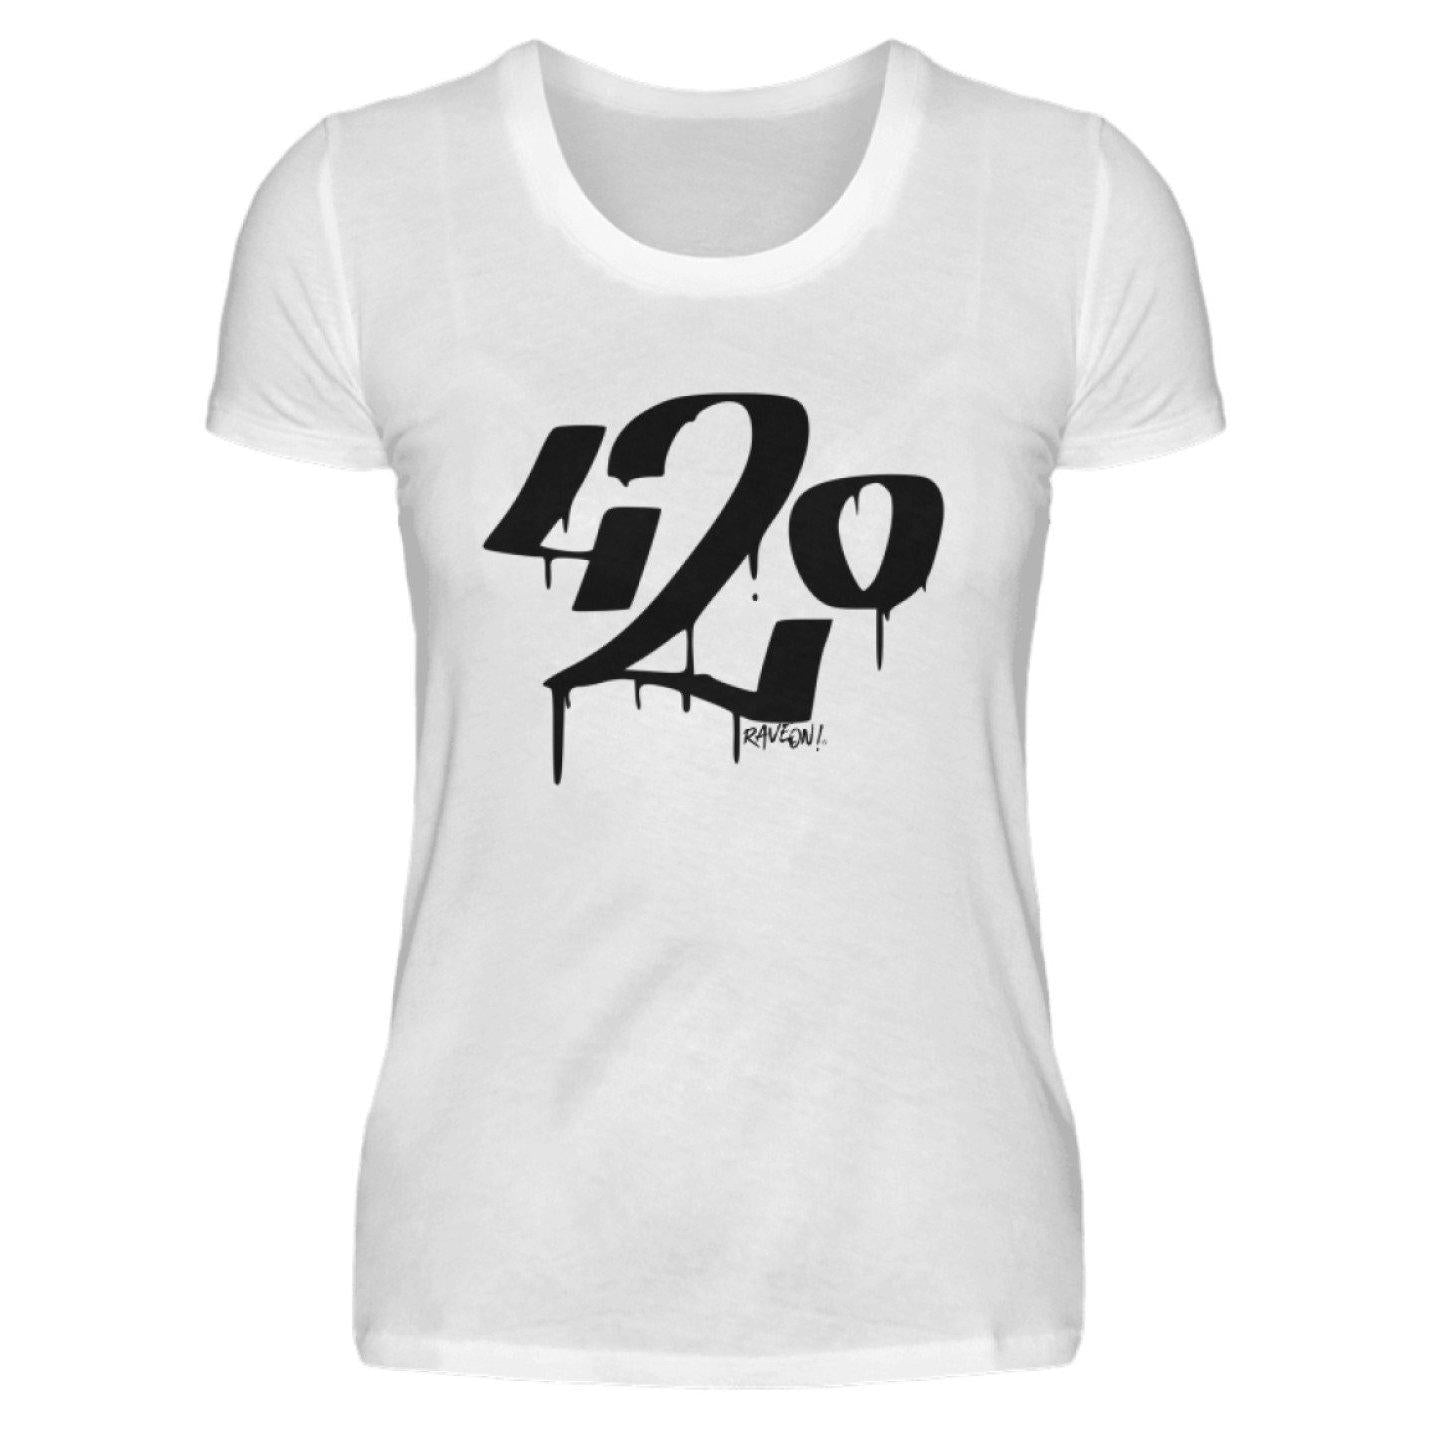 420 white - Rave On!® - Damenshirt Damen Basic T-Shirt White / S - Rave On!® der Club & Techno Szene Shop für Coole Junge Mode Streetwear Style & Fashion Outfits + Sexy Festival 420 Stuff